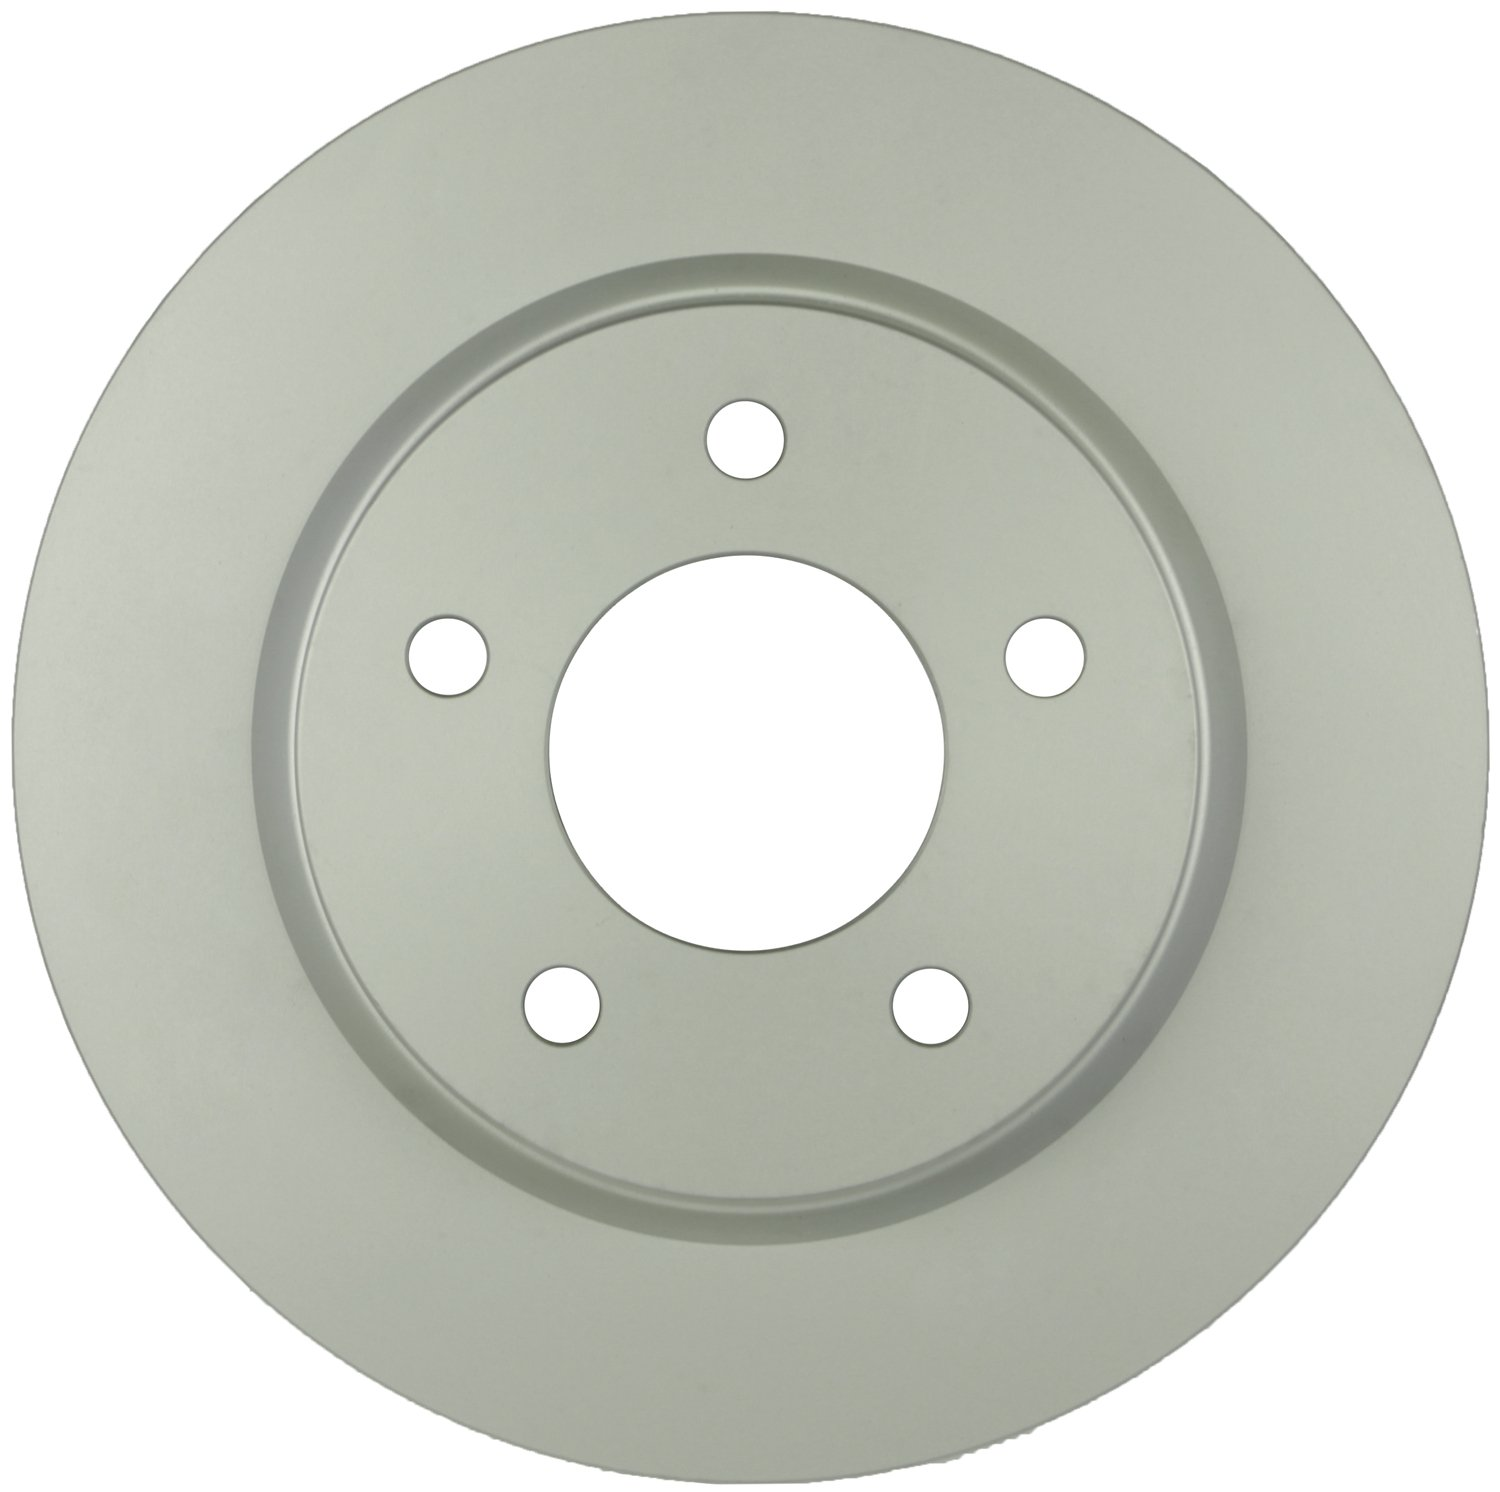 Bosch 34010900 QuietCast Premium Disc Brake Rotor, Rear